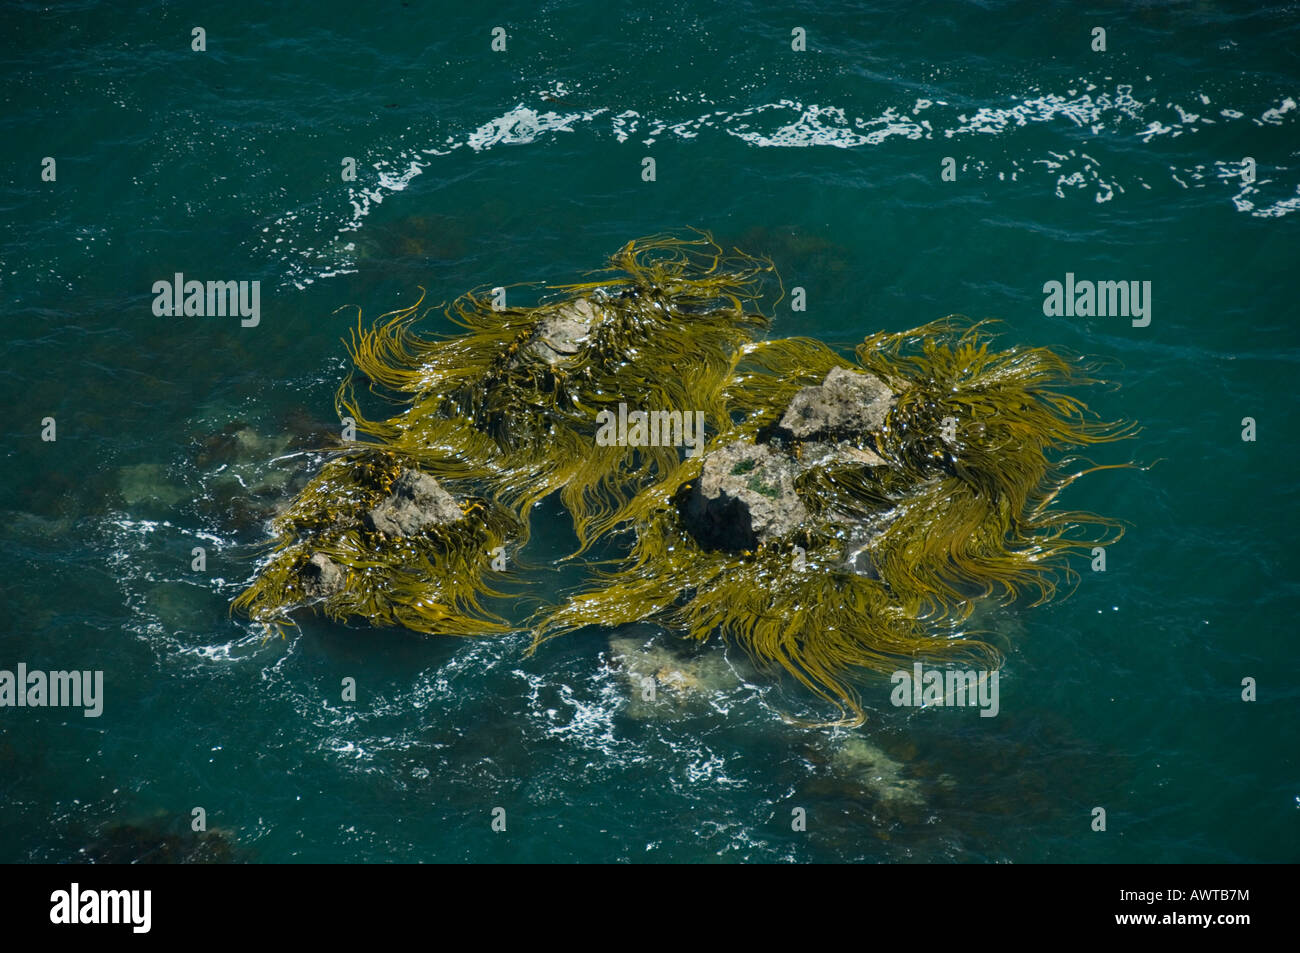 Kelp beds and Pacific Coast, Coastal Habitat of Marine Otter (Lontra felina) or Chungungo, ENDANGERED, Chiloe Island, - Stock Image